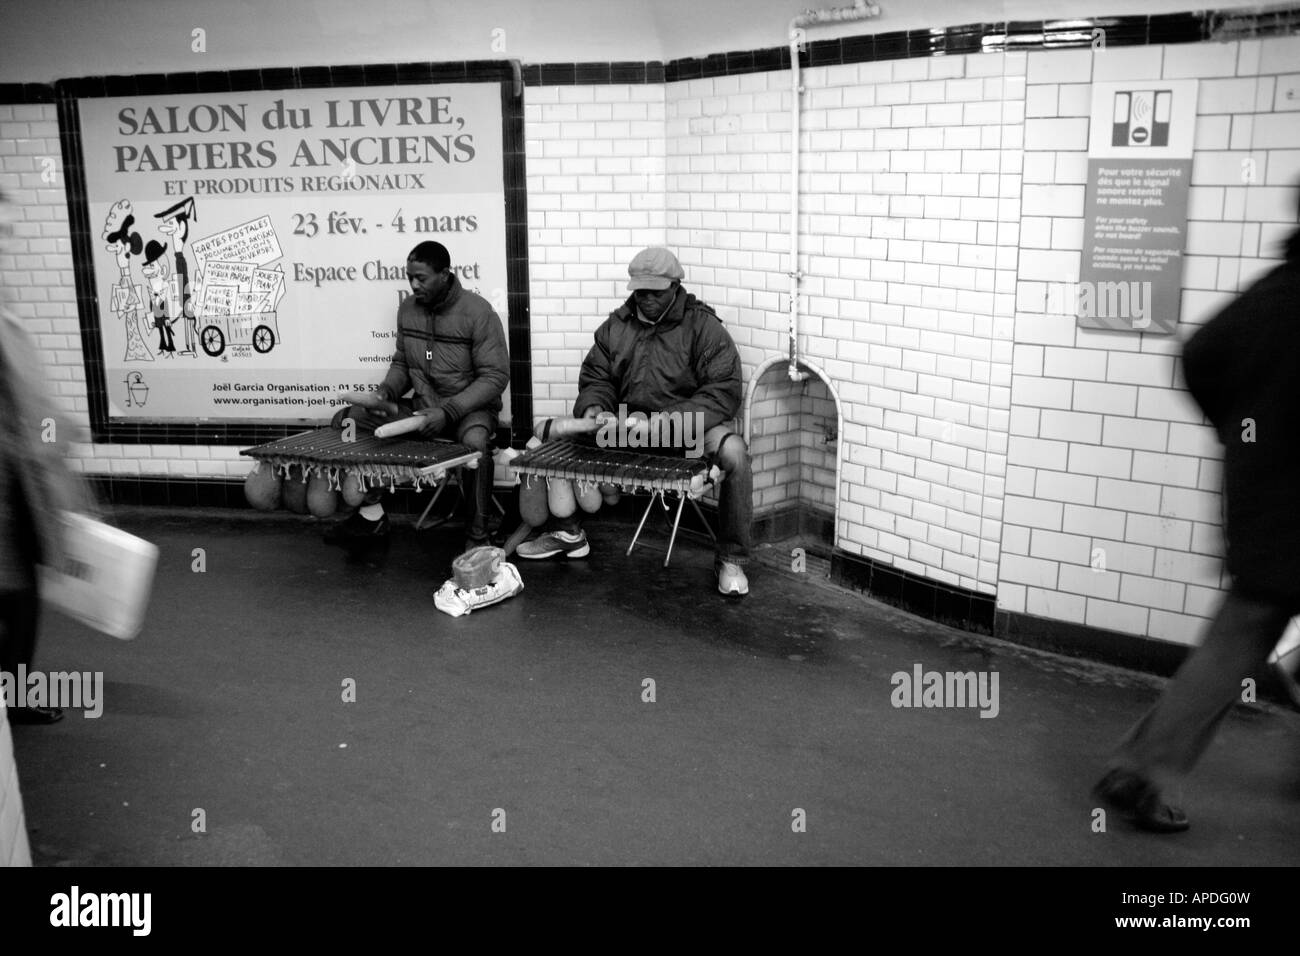 2 African buskers in a Paris metro station - Stock Image